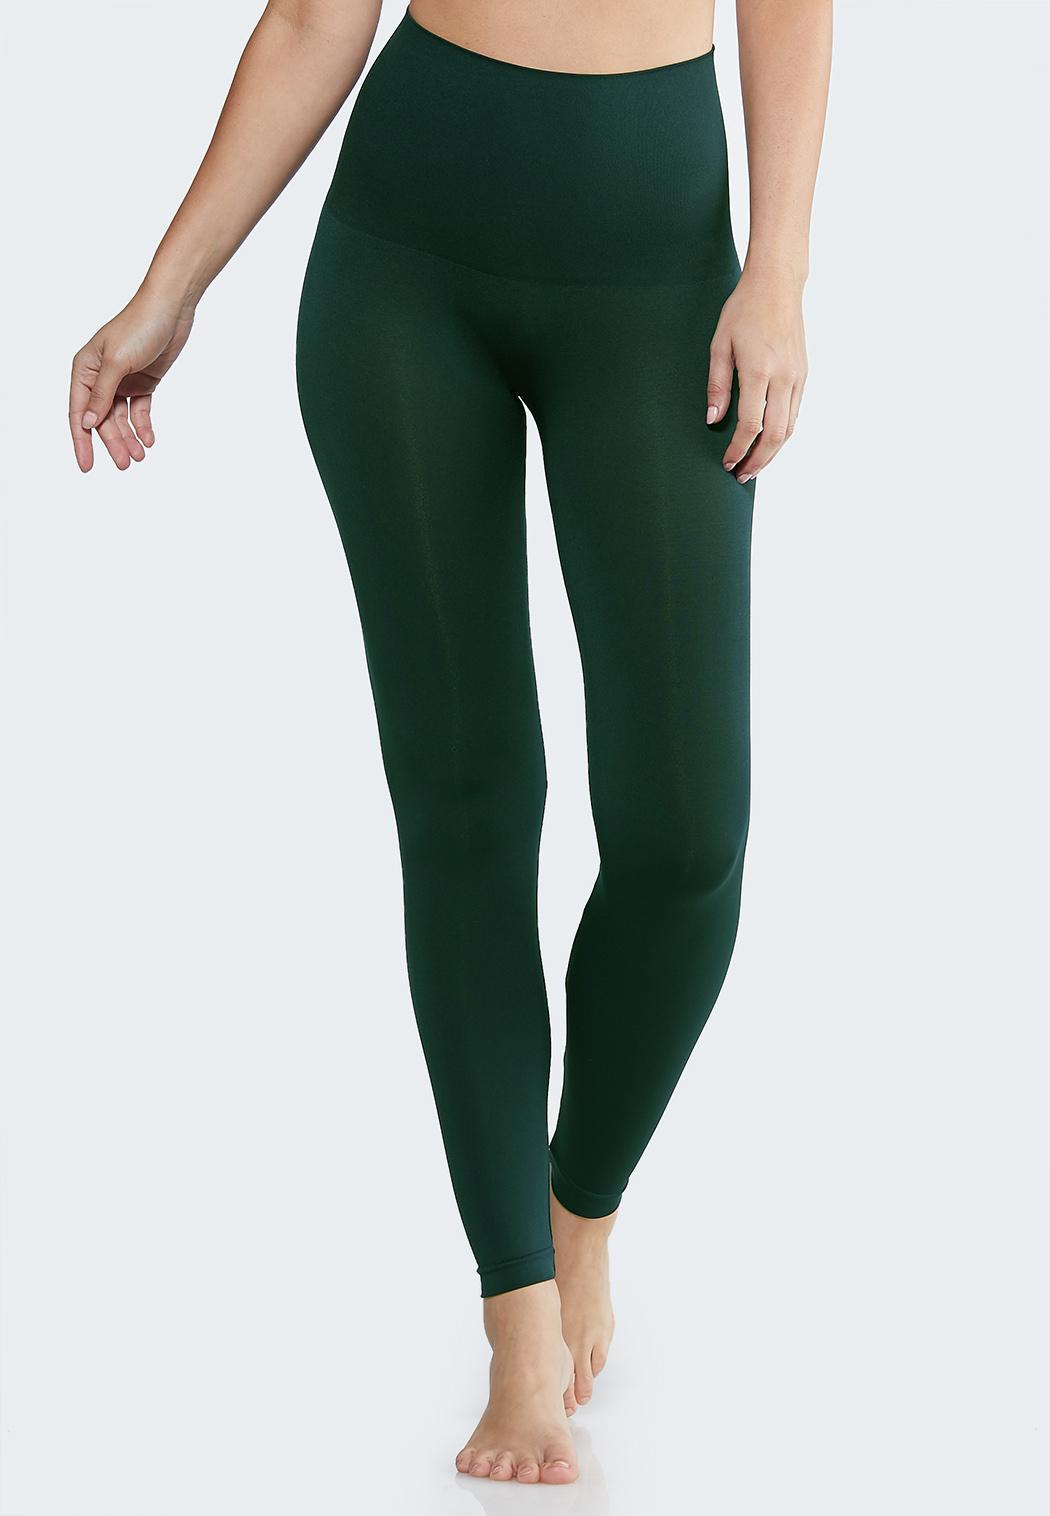 Plus Size The Perfect Green Shaping Leggings